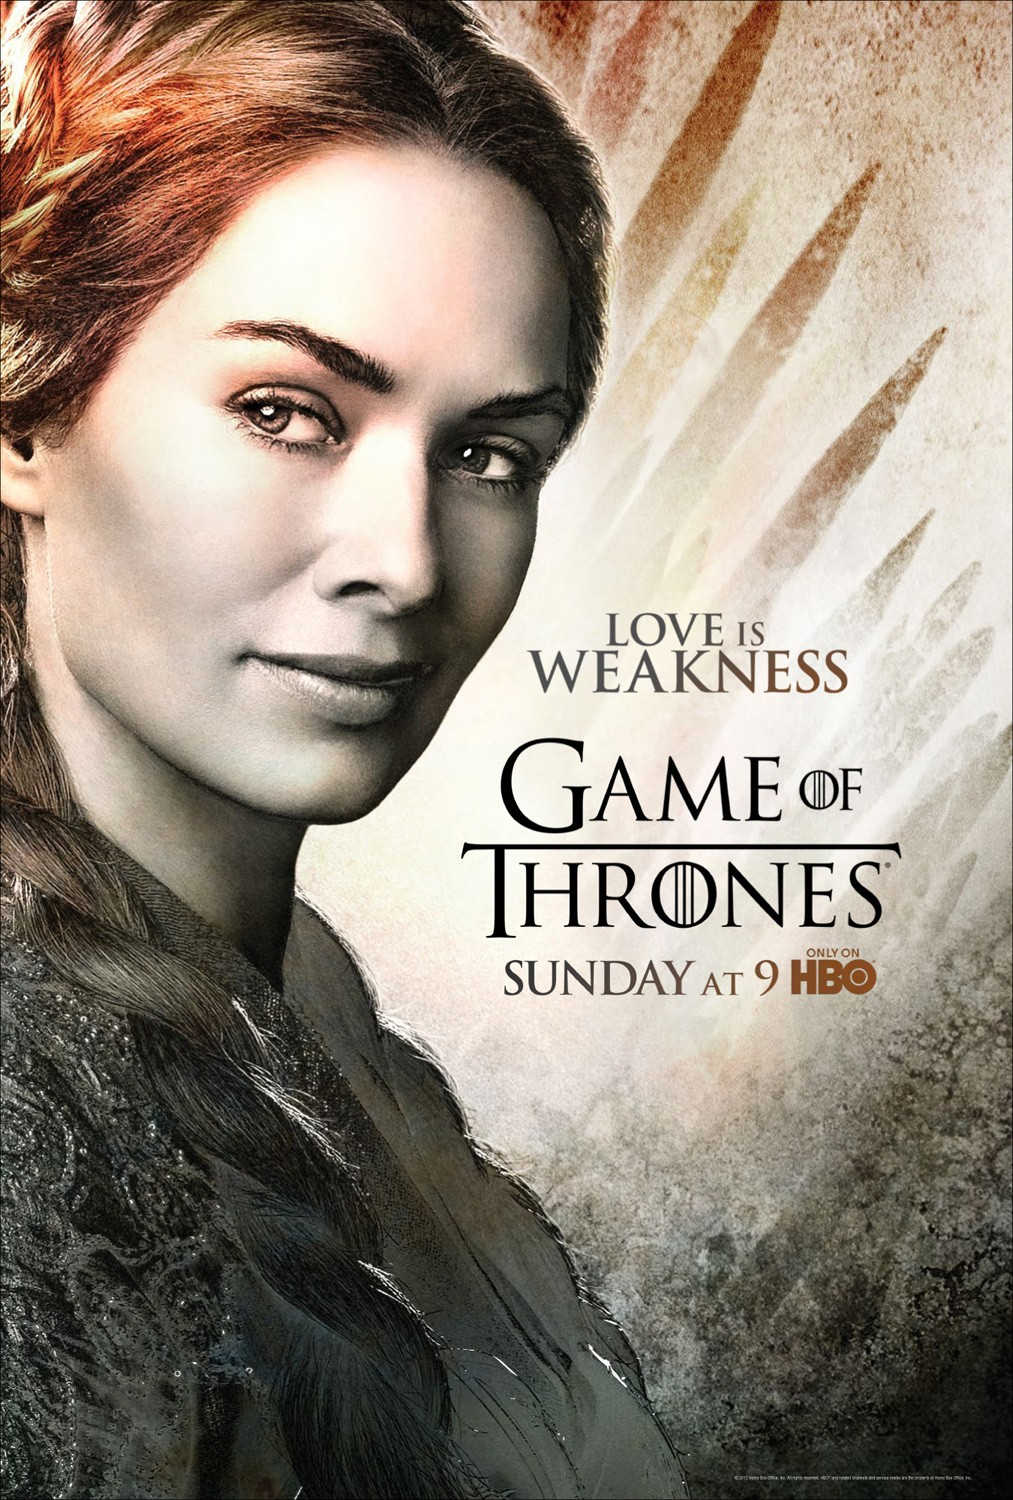 Game Of Thrones /!\ ATTENTION AUX SPOILERS /!\ Cersei_Season_2_Promo